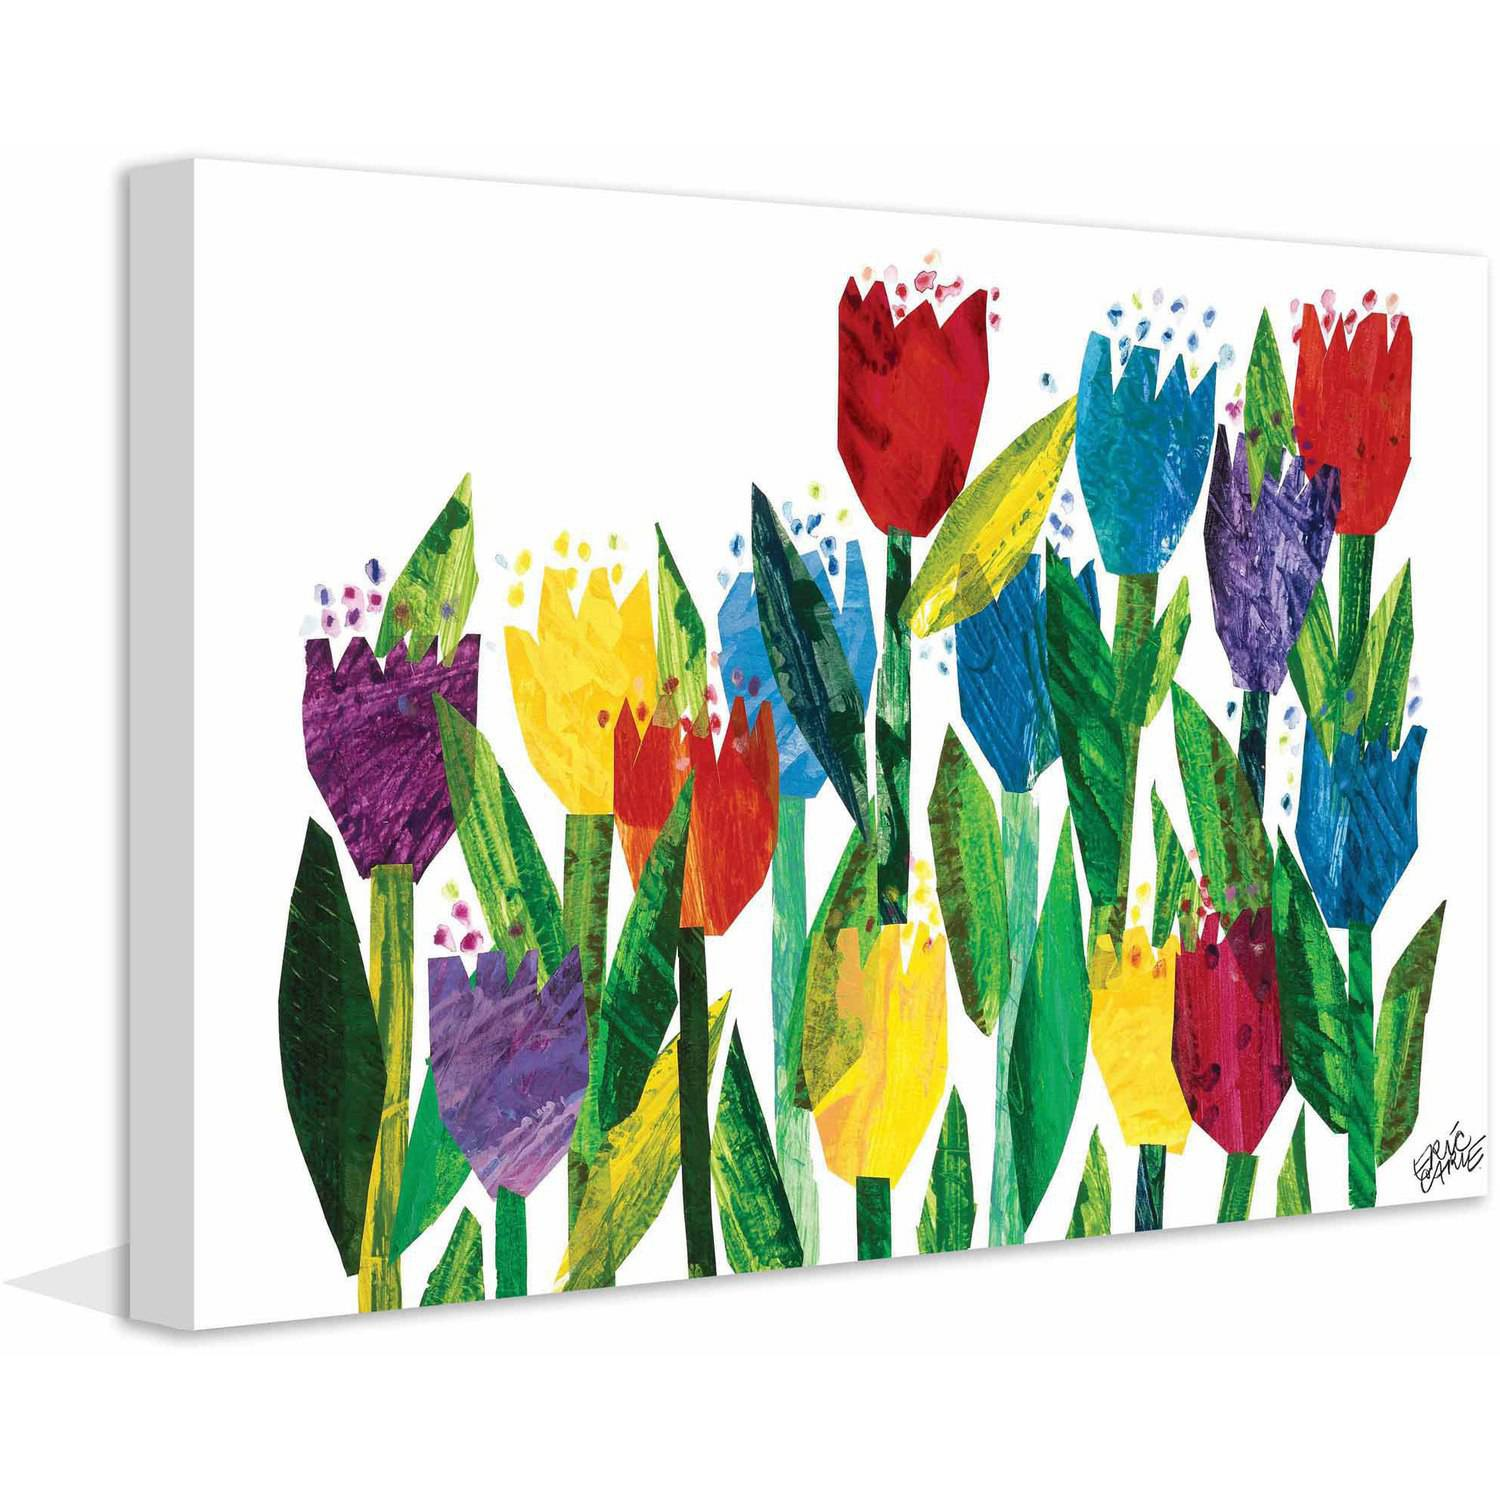 Eric Carle Tulips Art Print on Premium Canvas